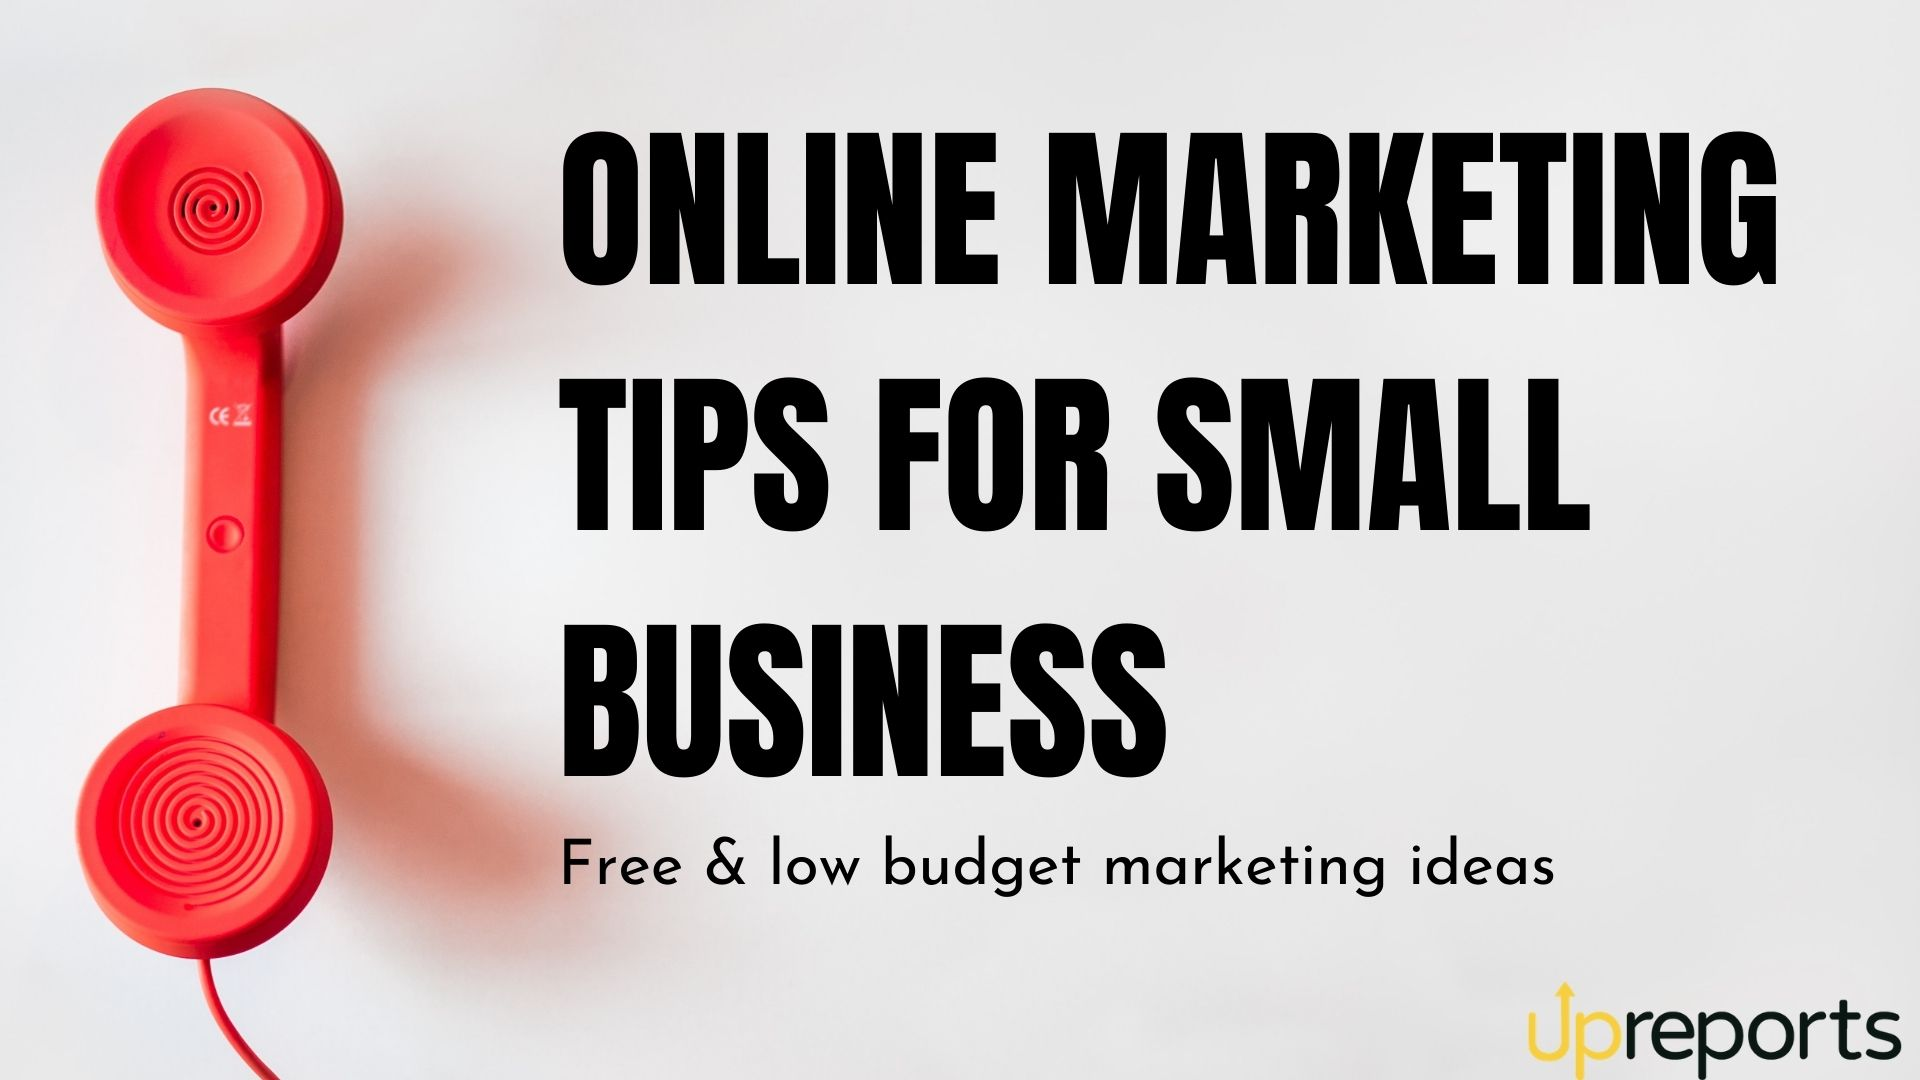 Marketing Tips for Small Business: Free & Low Budget